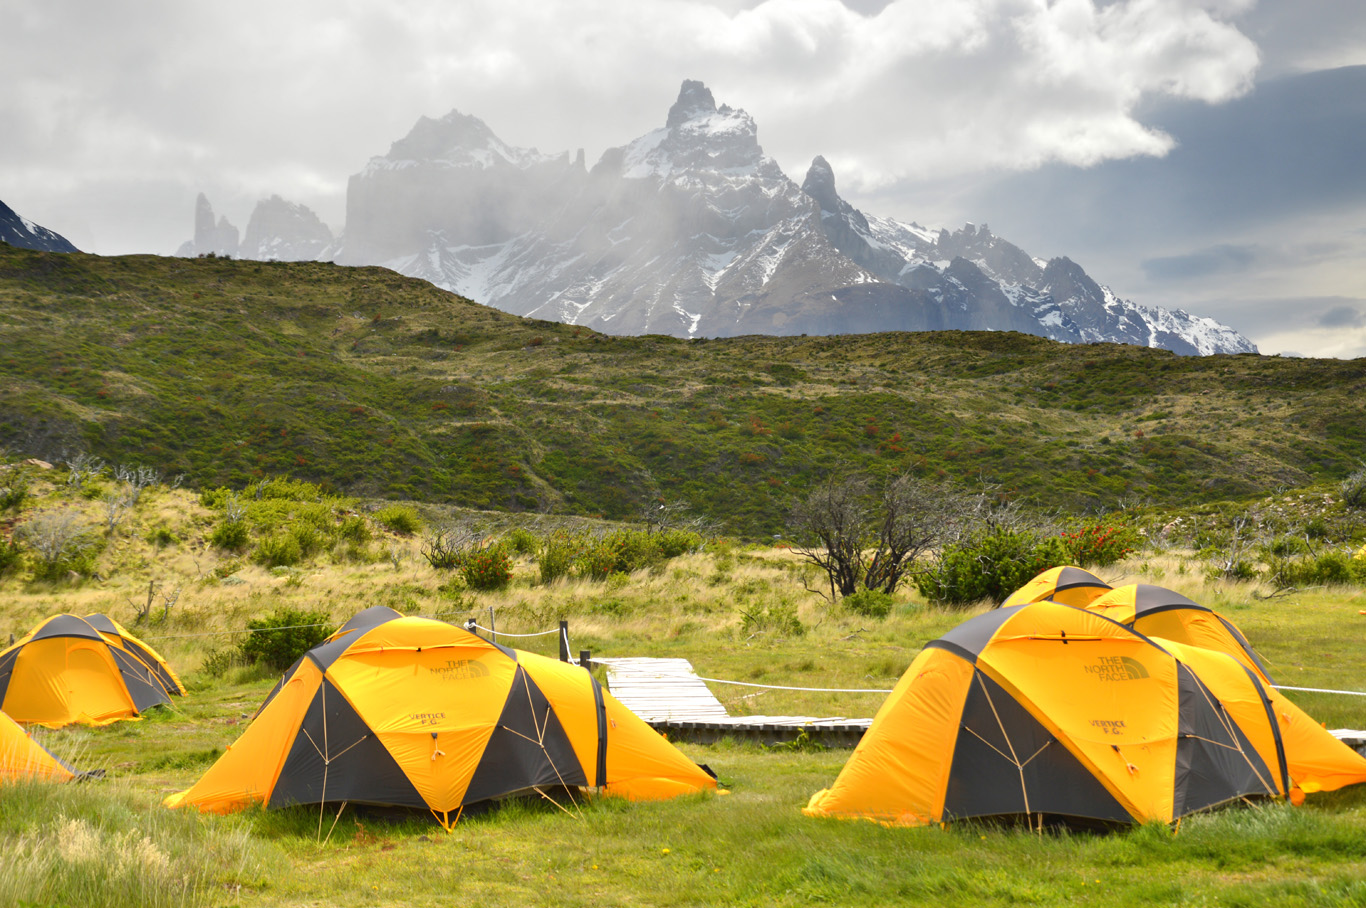 Tents in Paine Grande Camping site